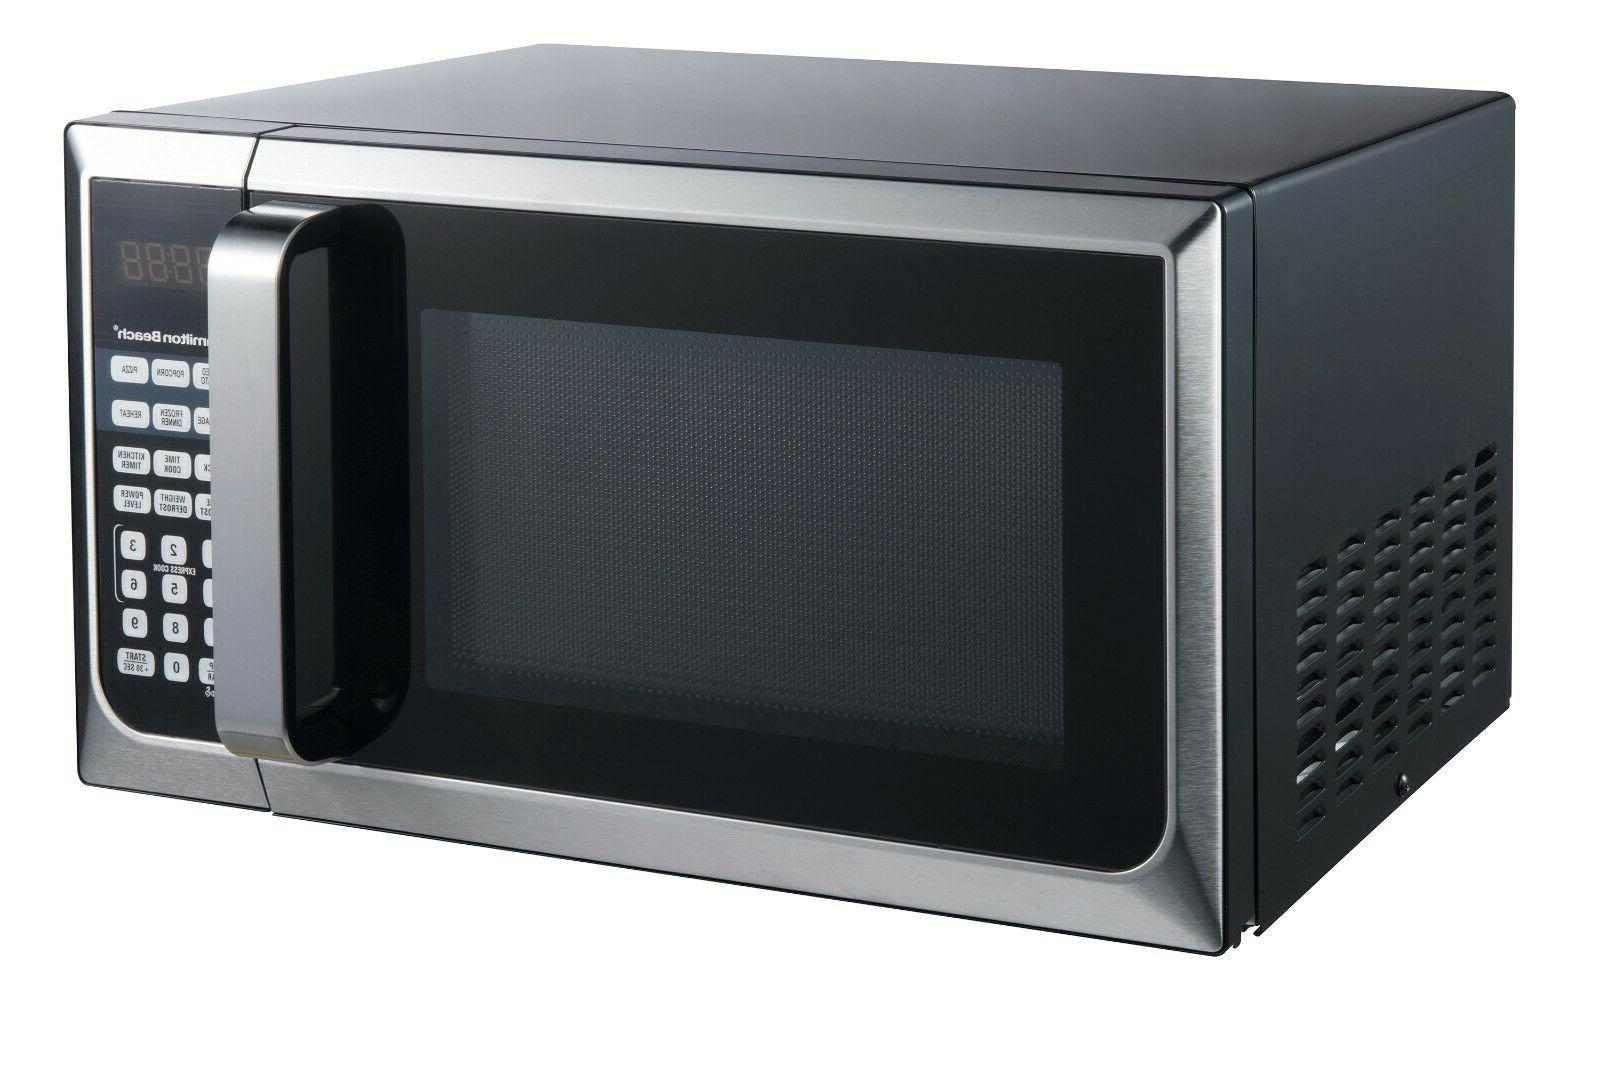 Stainless Steel Microwave Oven 0.9 Cu Ft For Kitchen Counter